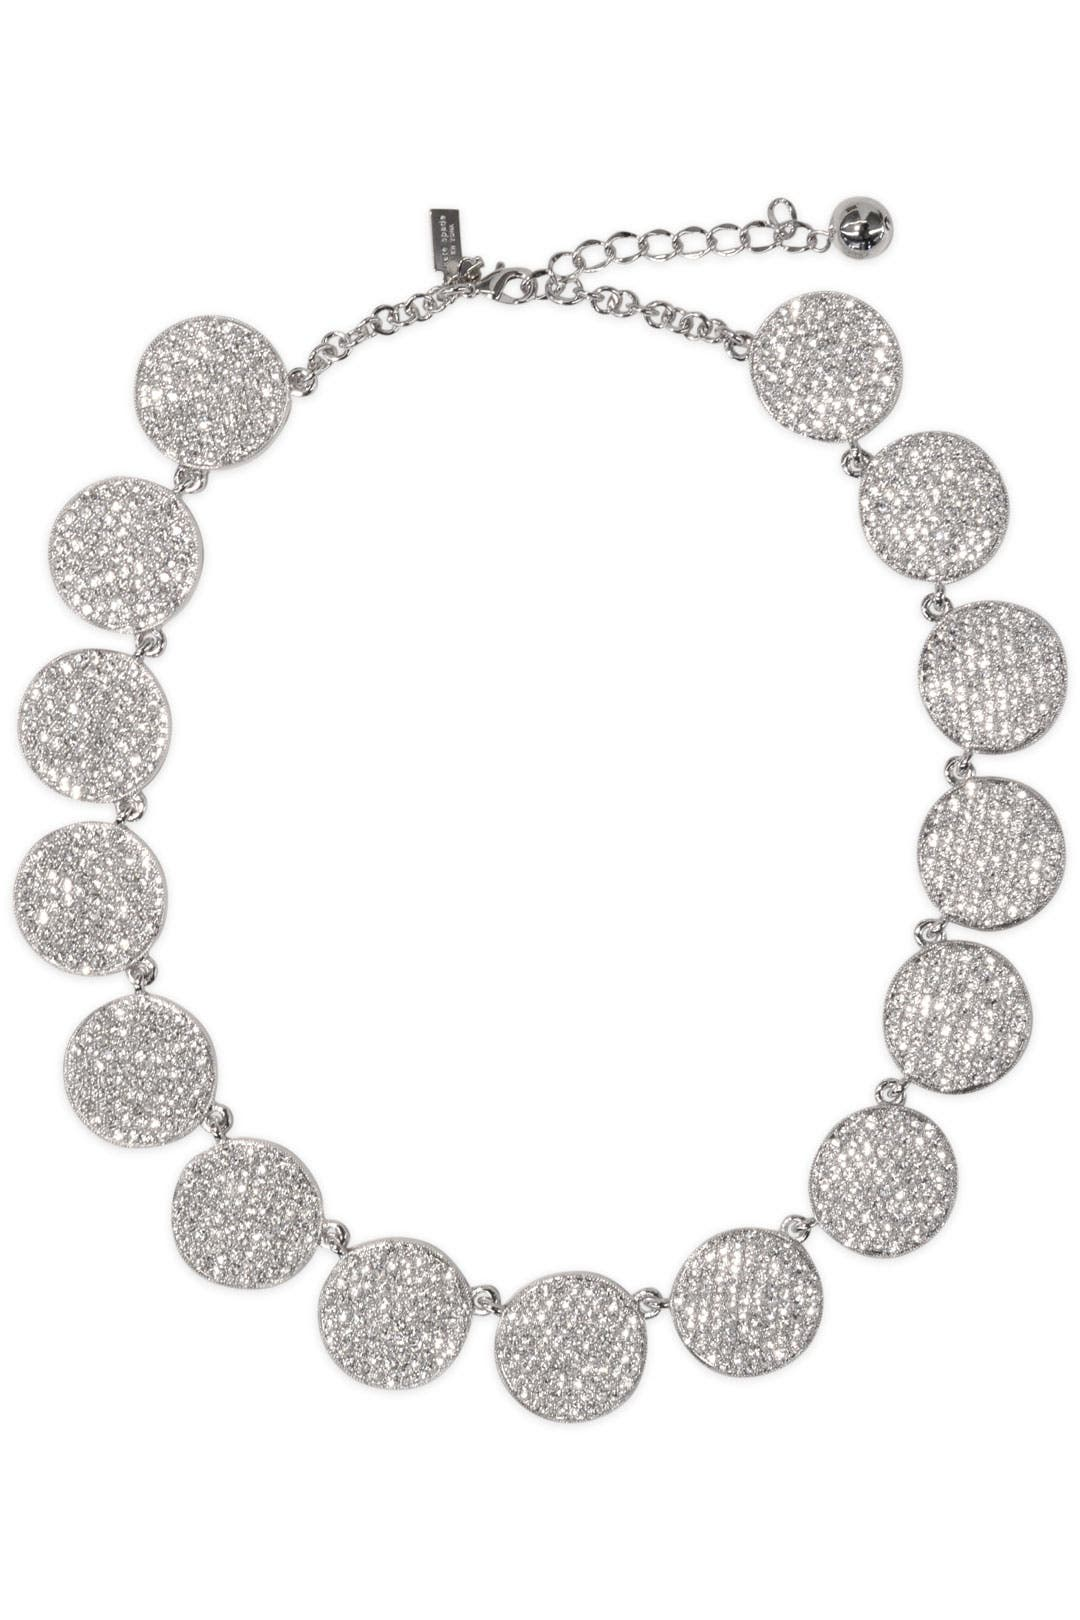 Silver Bright Spot Necklace by kate spade new york accessories